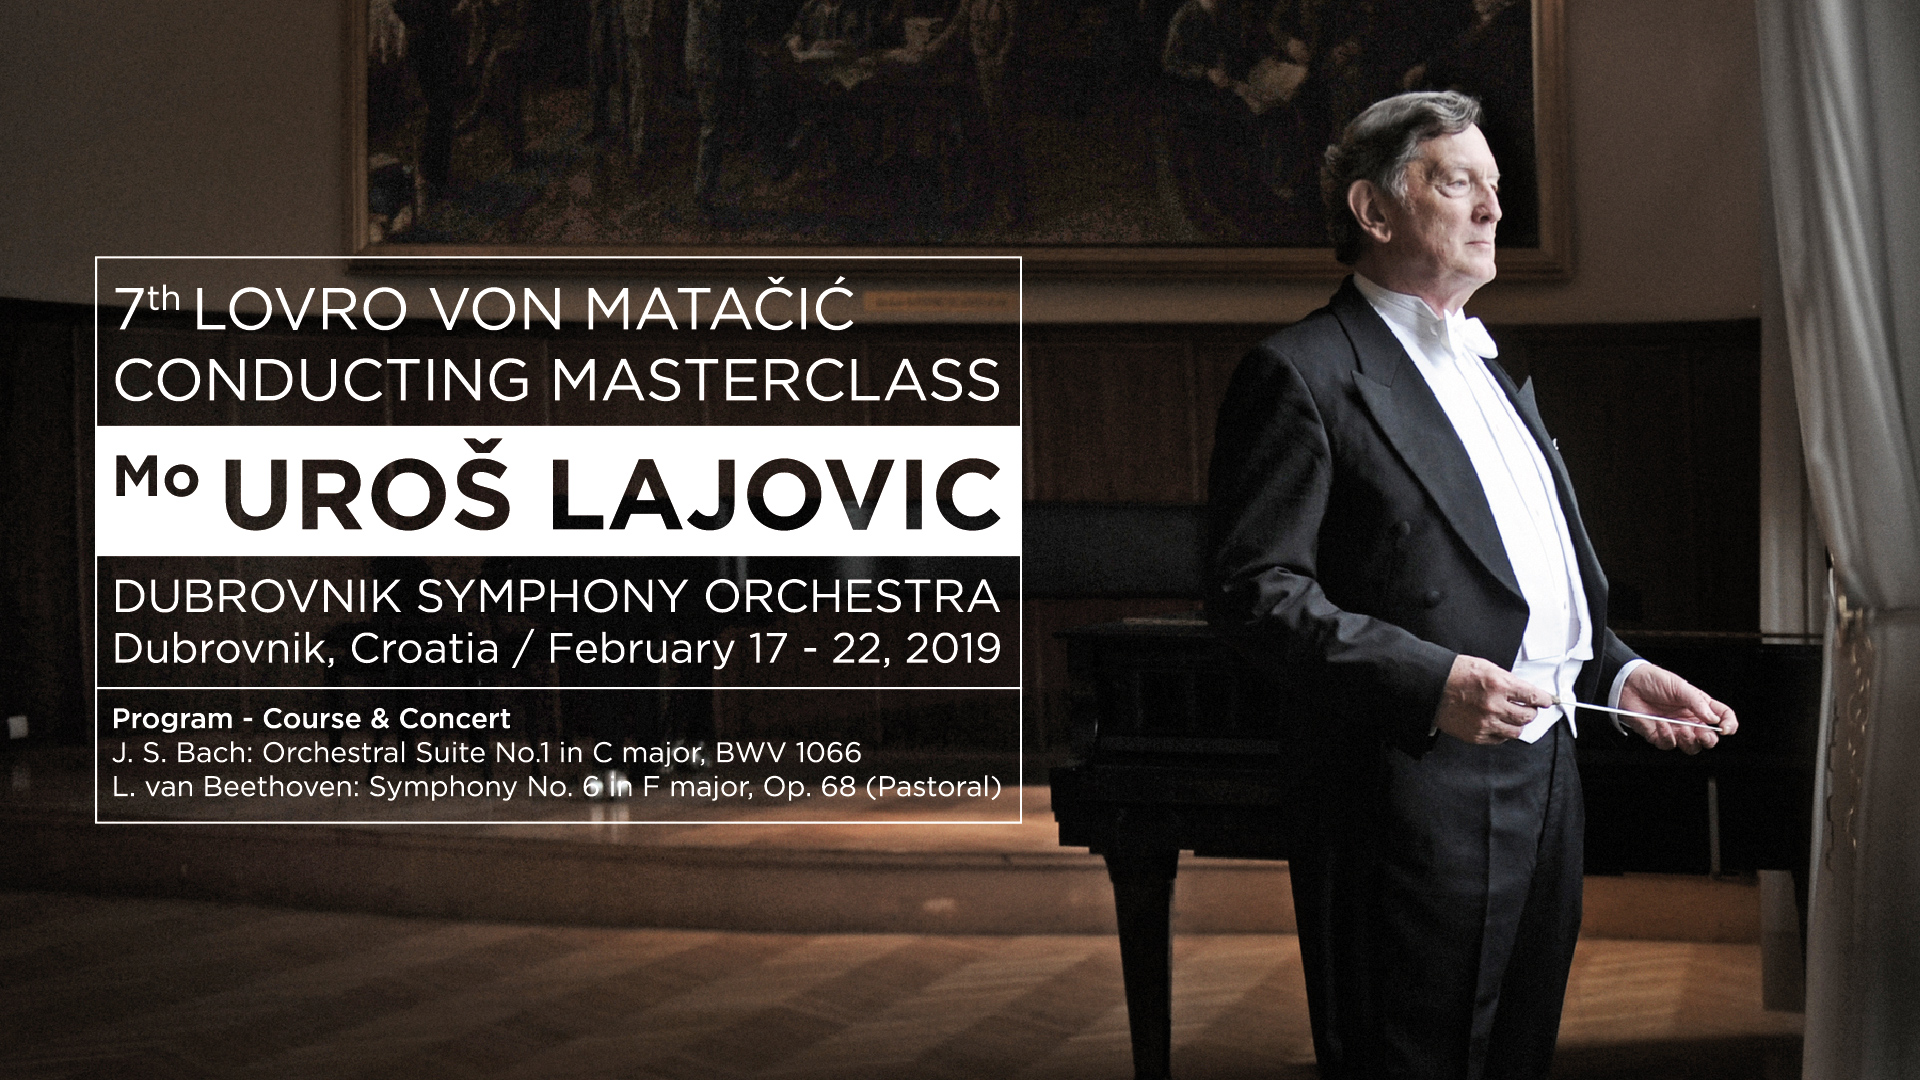 LAJOVIC_FB Cover1920x1080-01.jpg